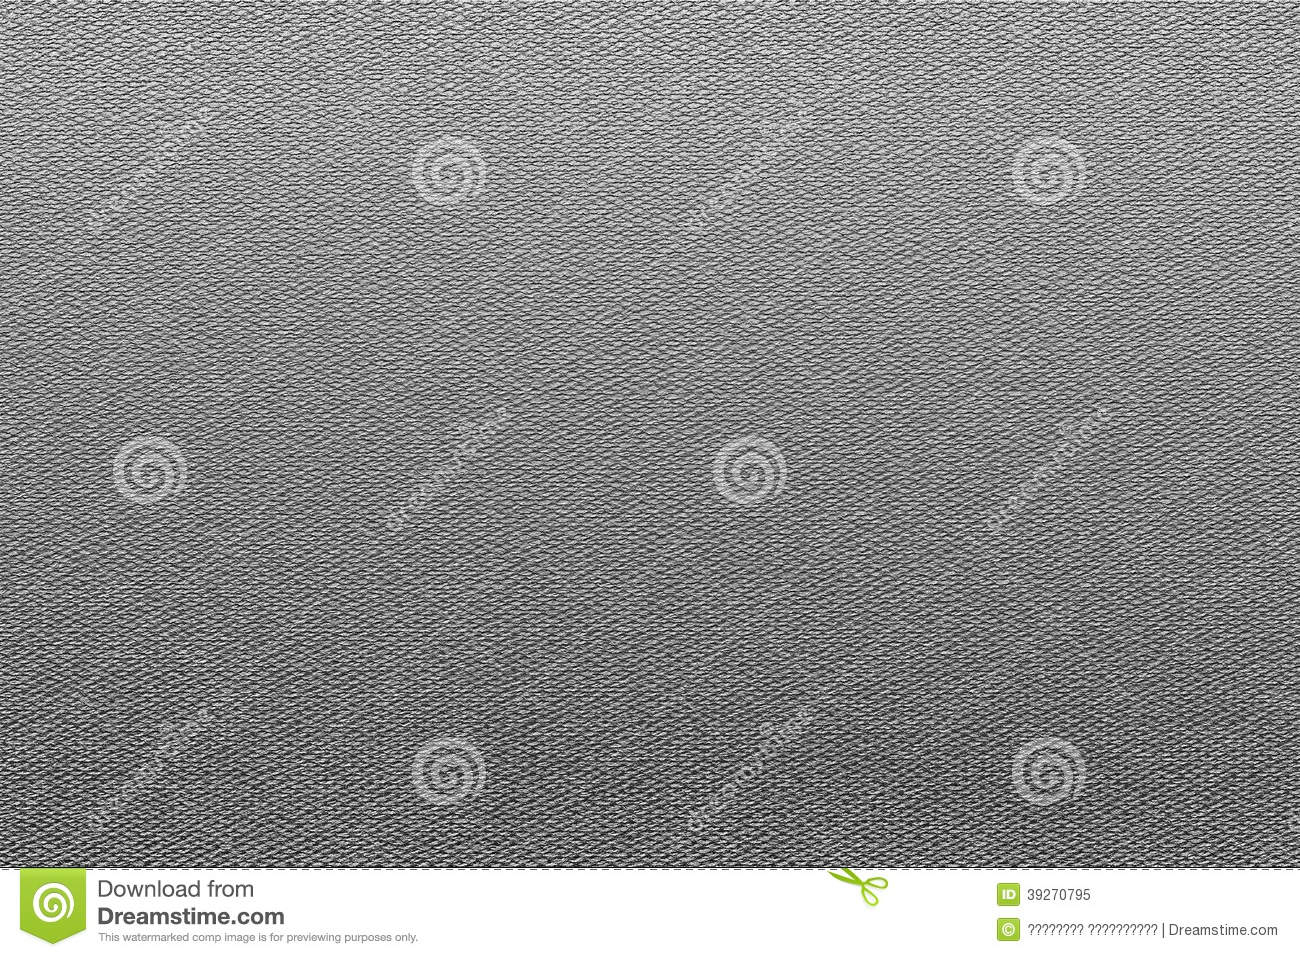 Jpg Texture Background Free Stock Photos Download 105 545: Texture Of A Relief Surface Stock Image